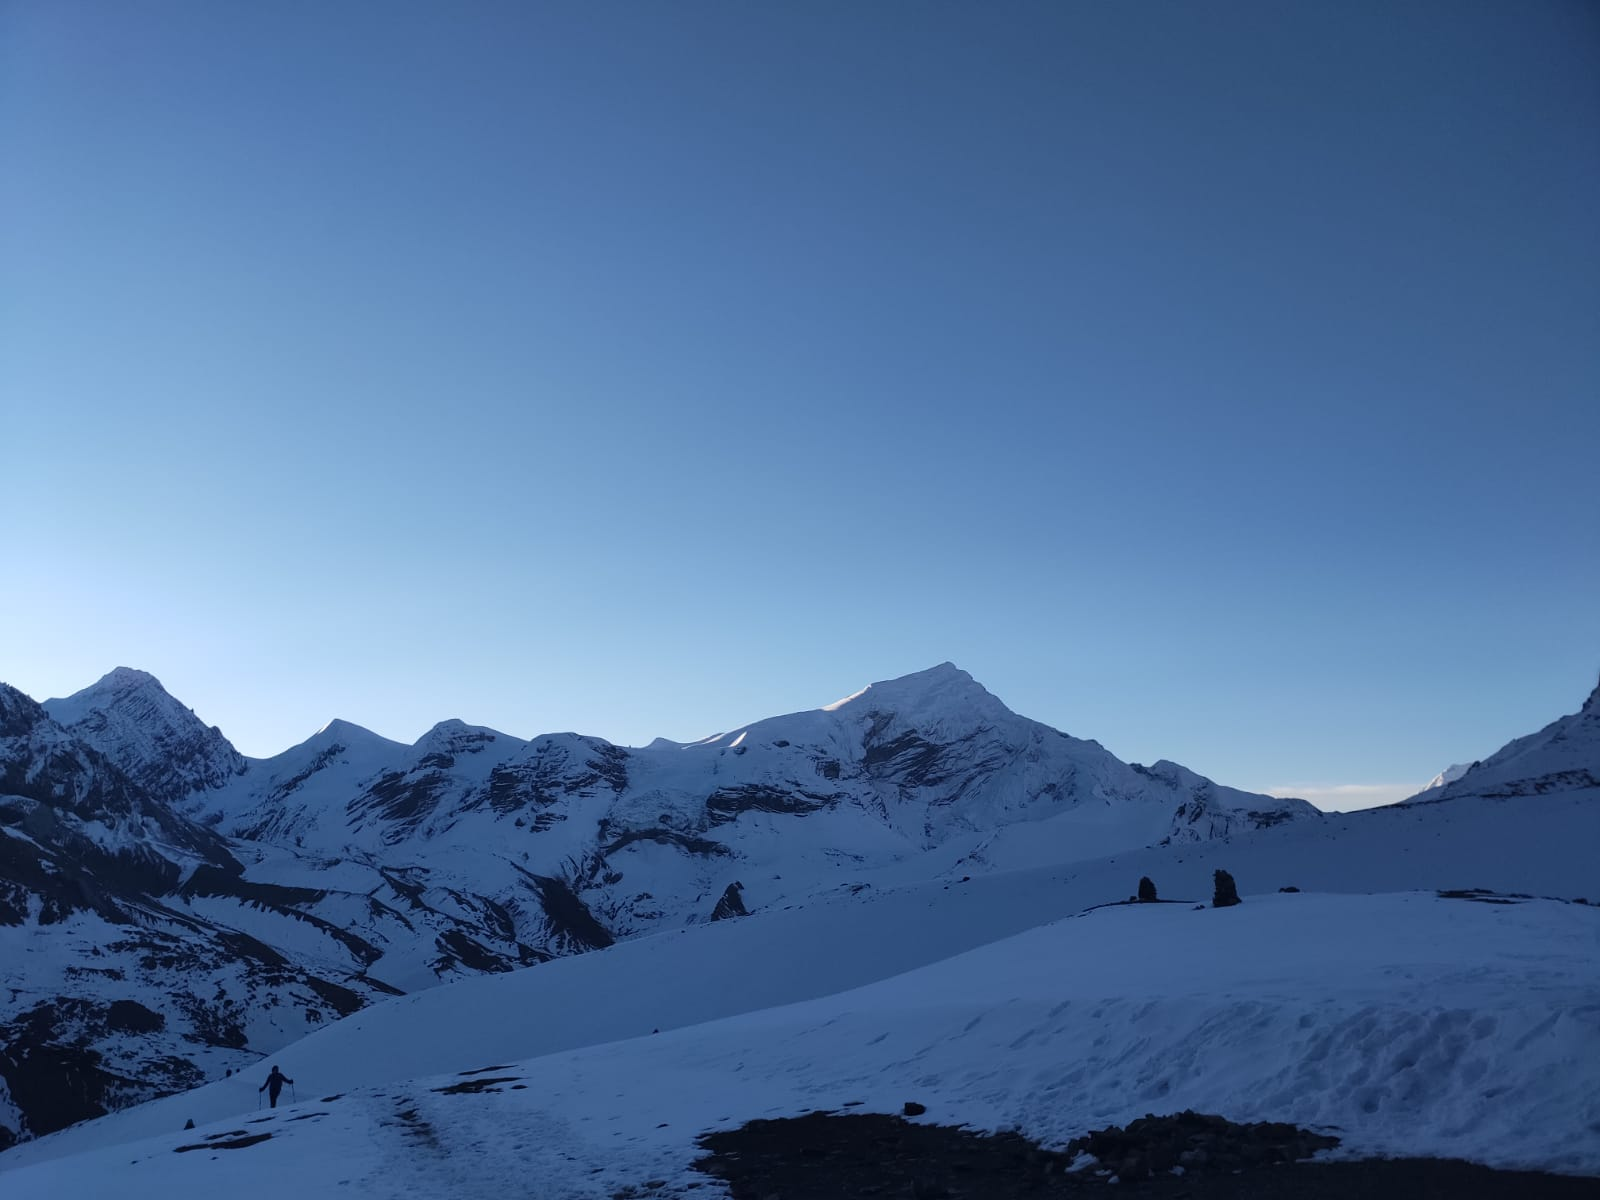 A hiker ascending a snow-covered path at dawn surrounded by mountains